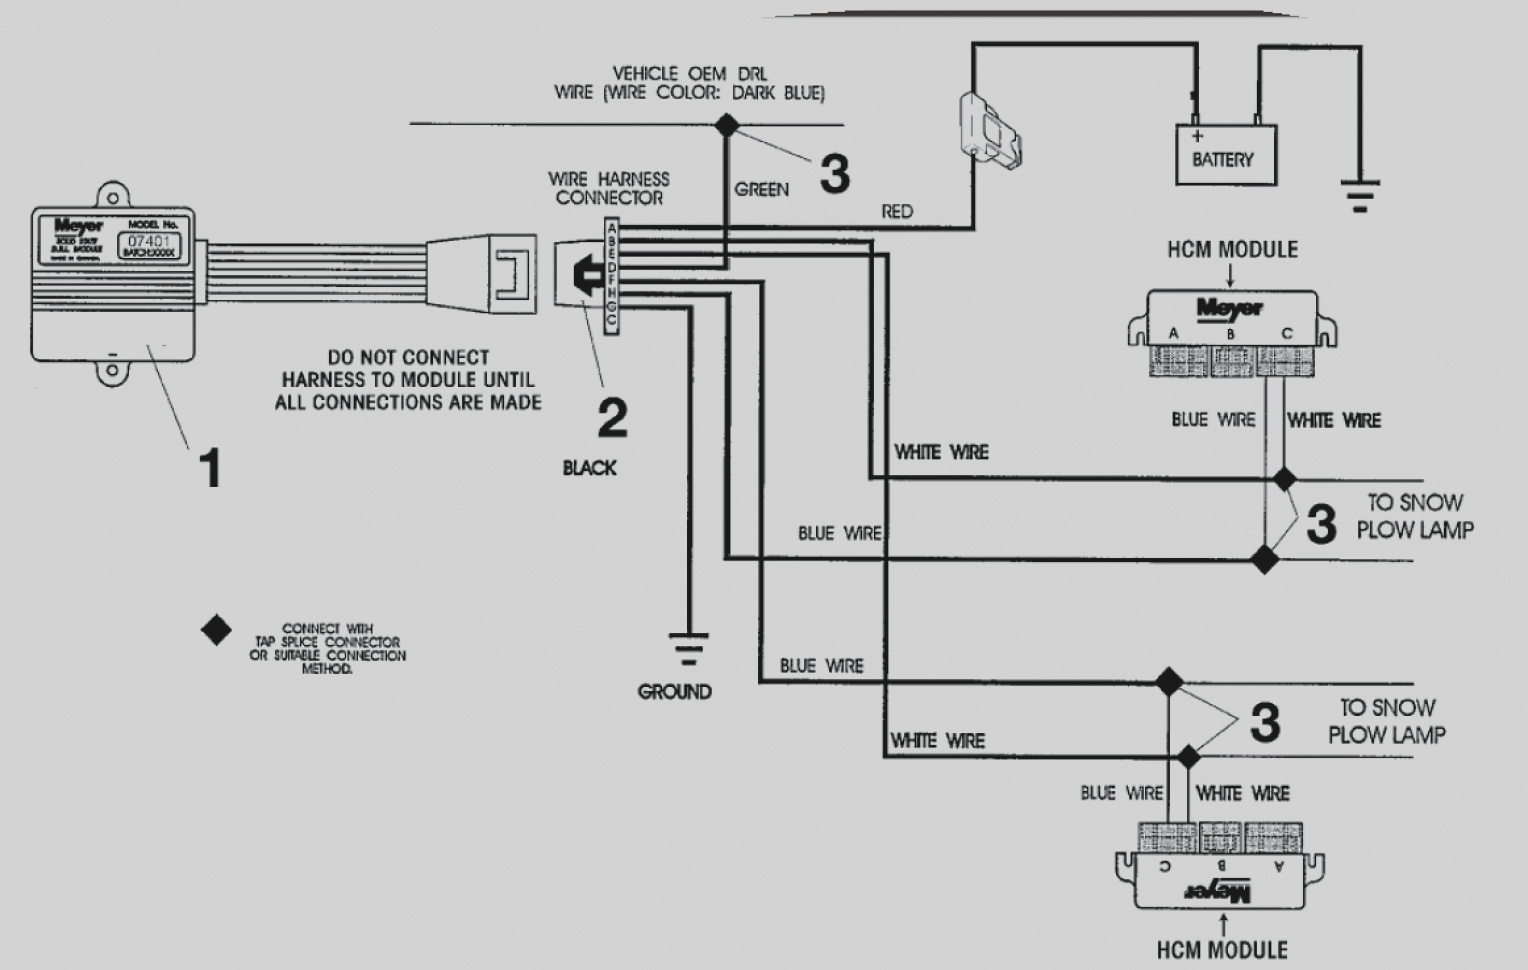 2002 Dodge Ram 1500 Stereo Wiring Diagram Gallery | Wiring Diagram ...